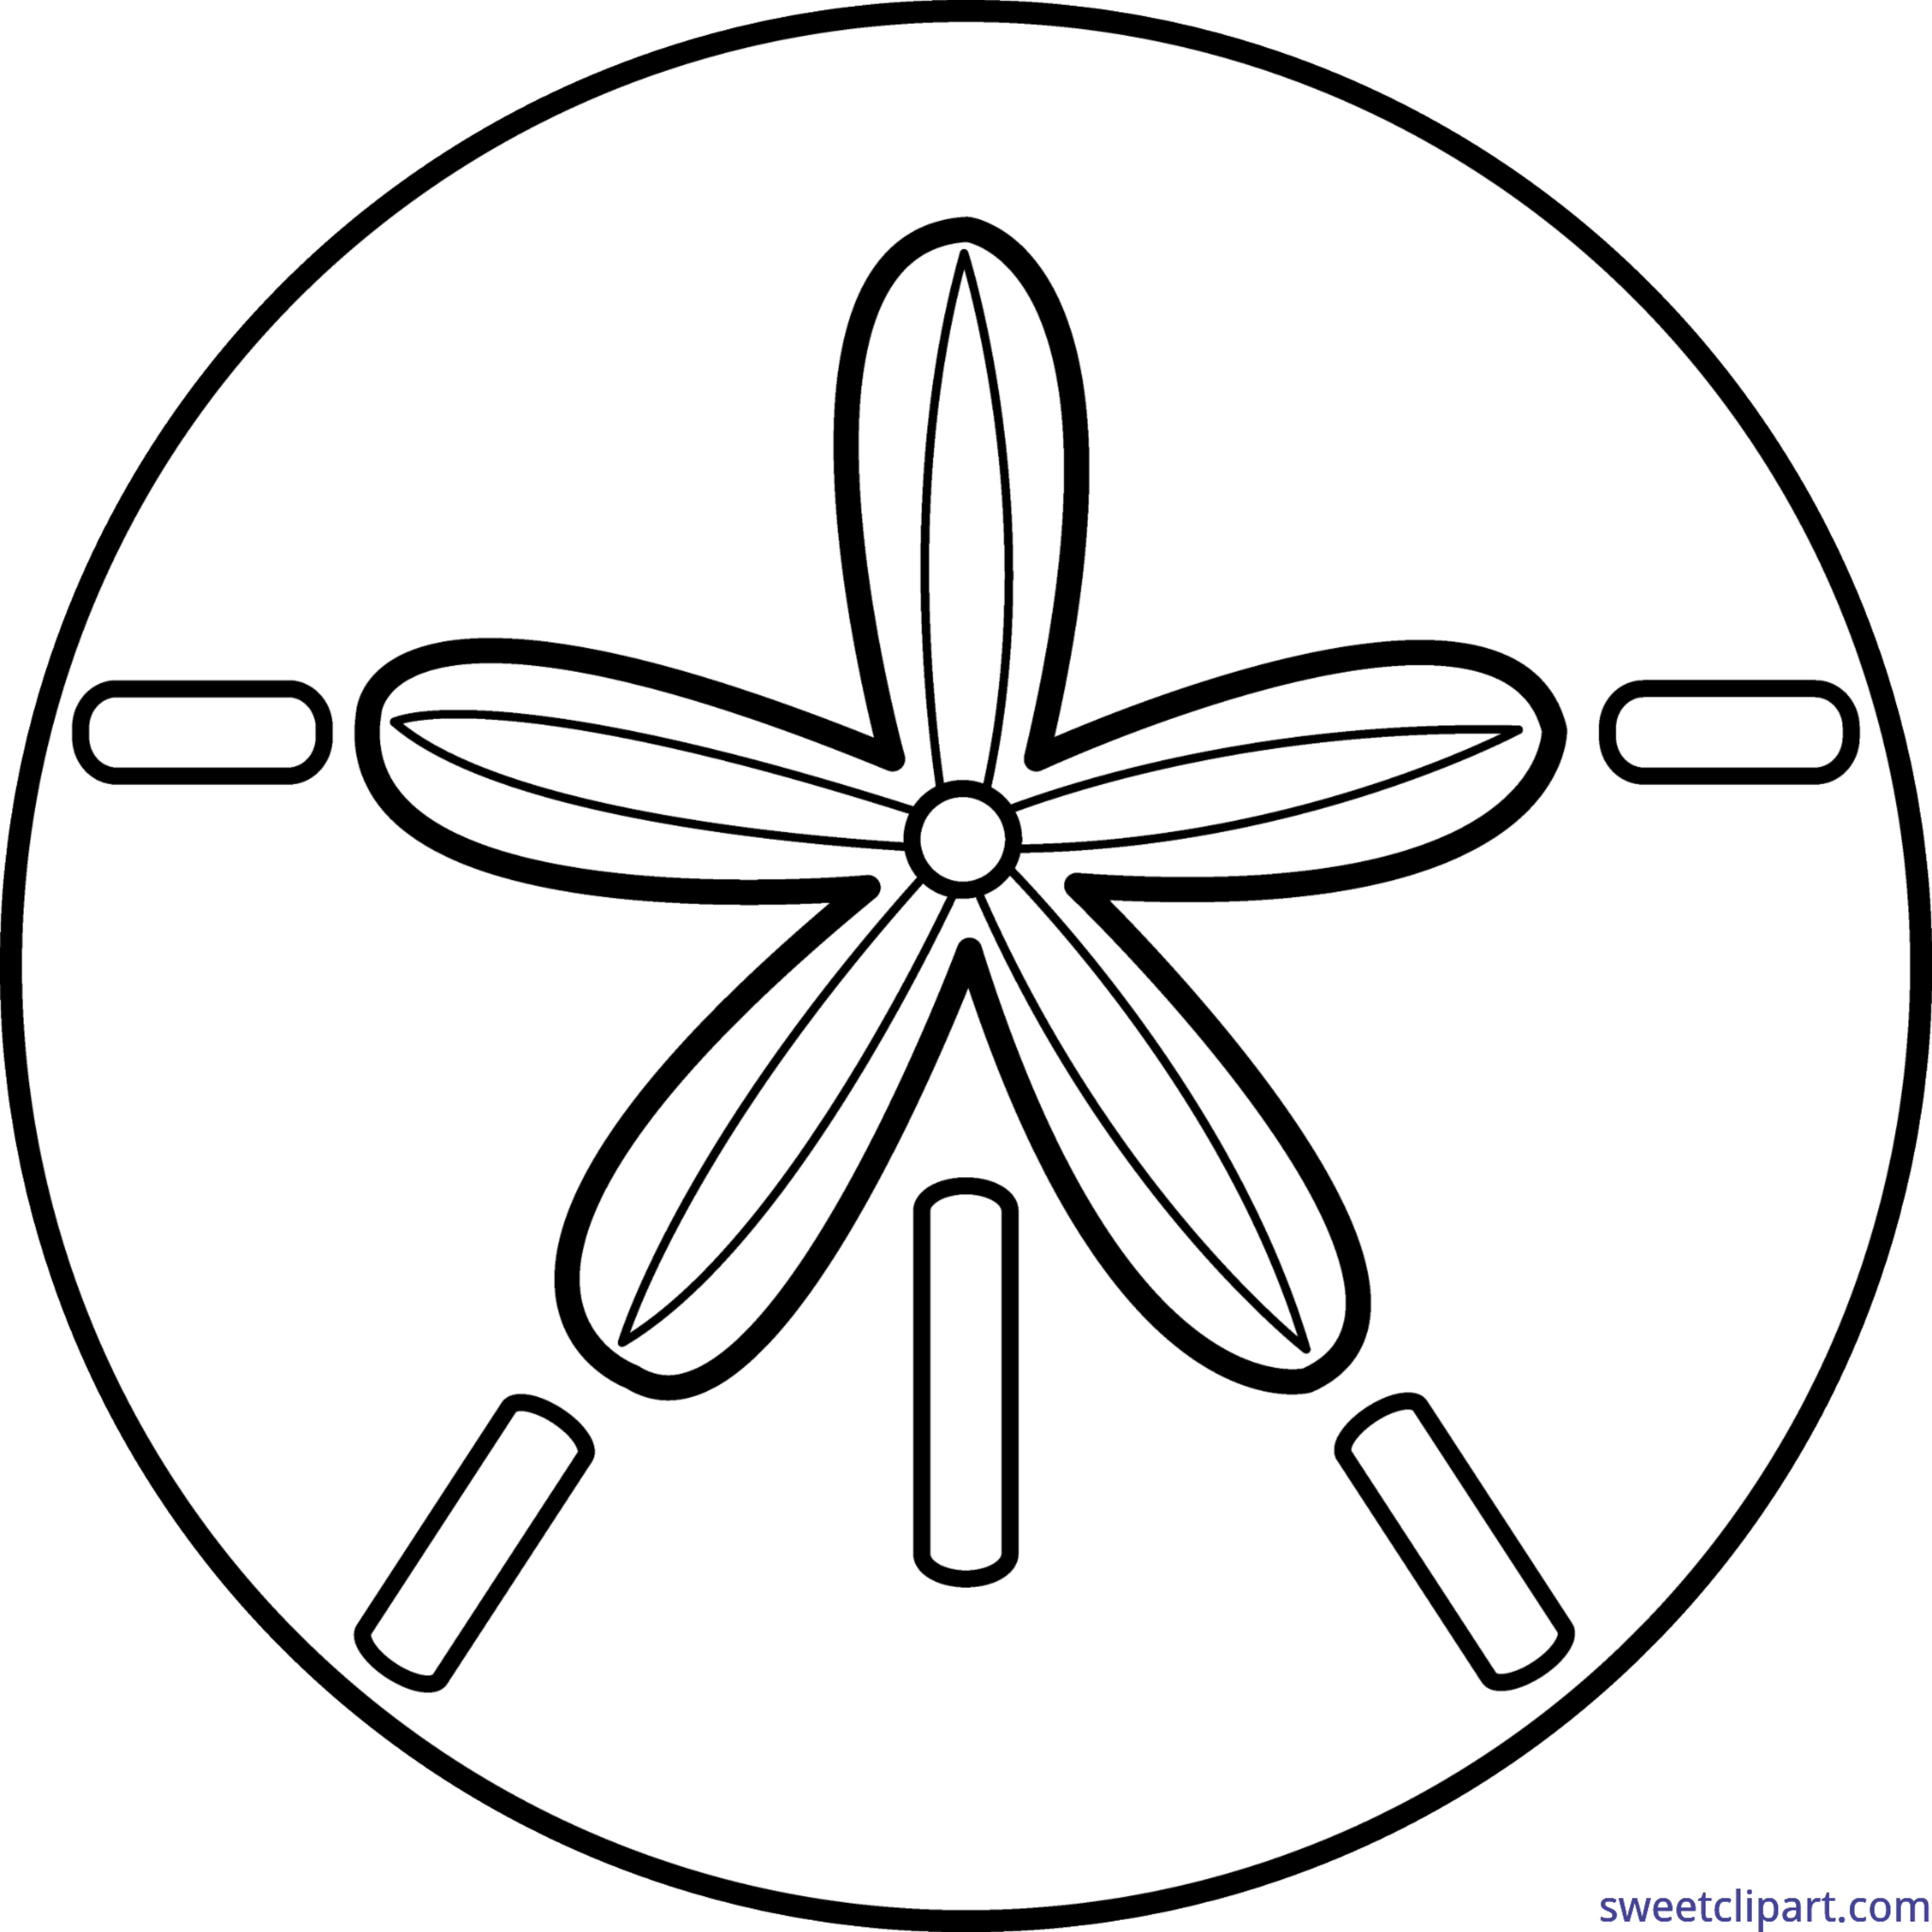 Sand Dollar Lineart Clip Art - Sand Dollar PNG Black And White